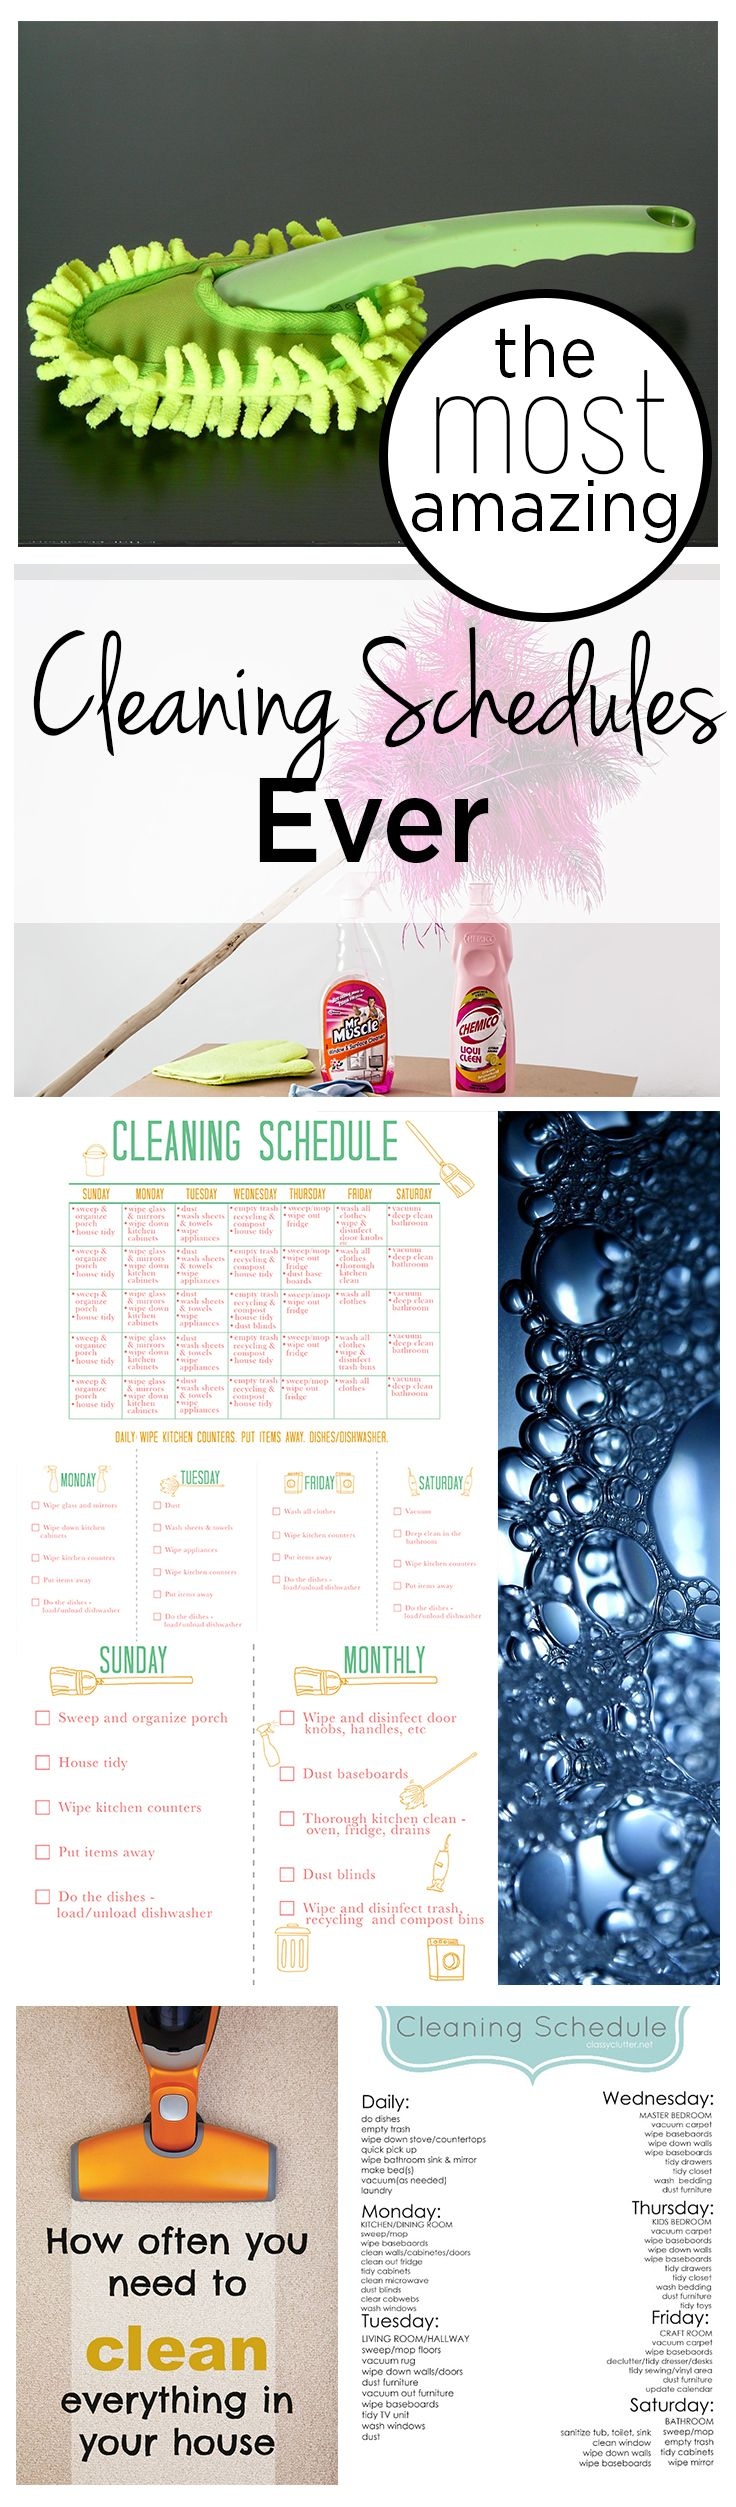 1425 best Cleaning Help images on Pinterest | Cleaning hacks ...